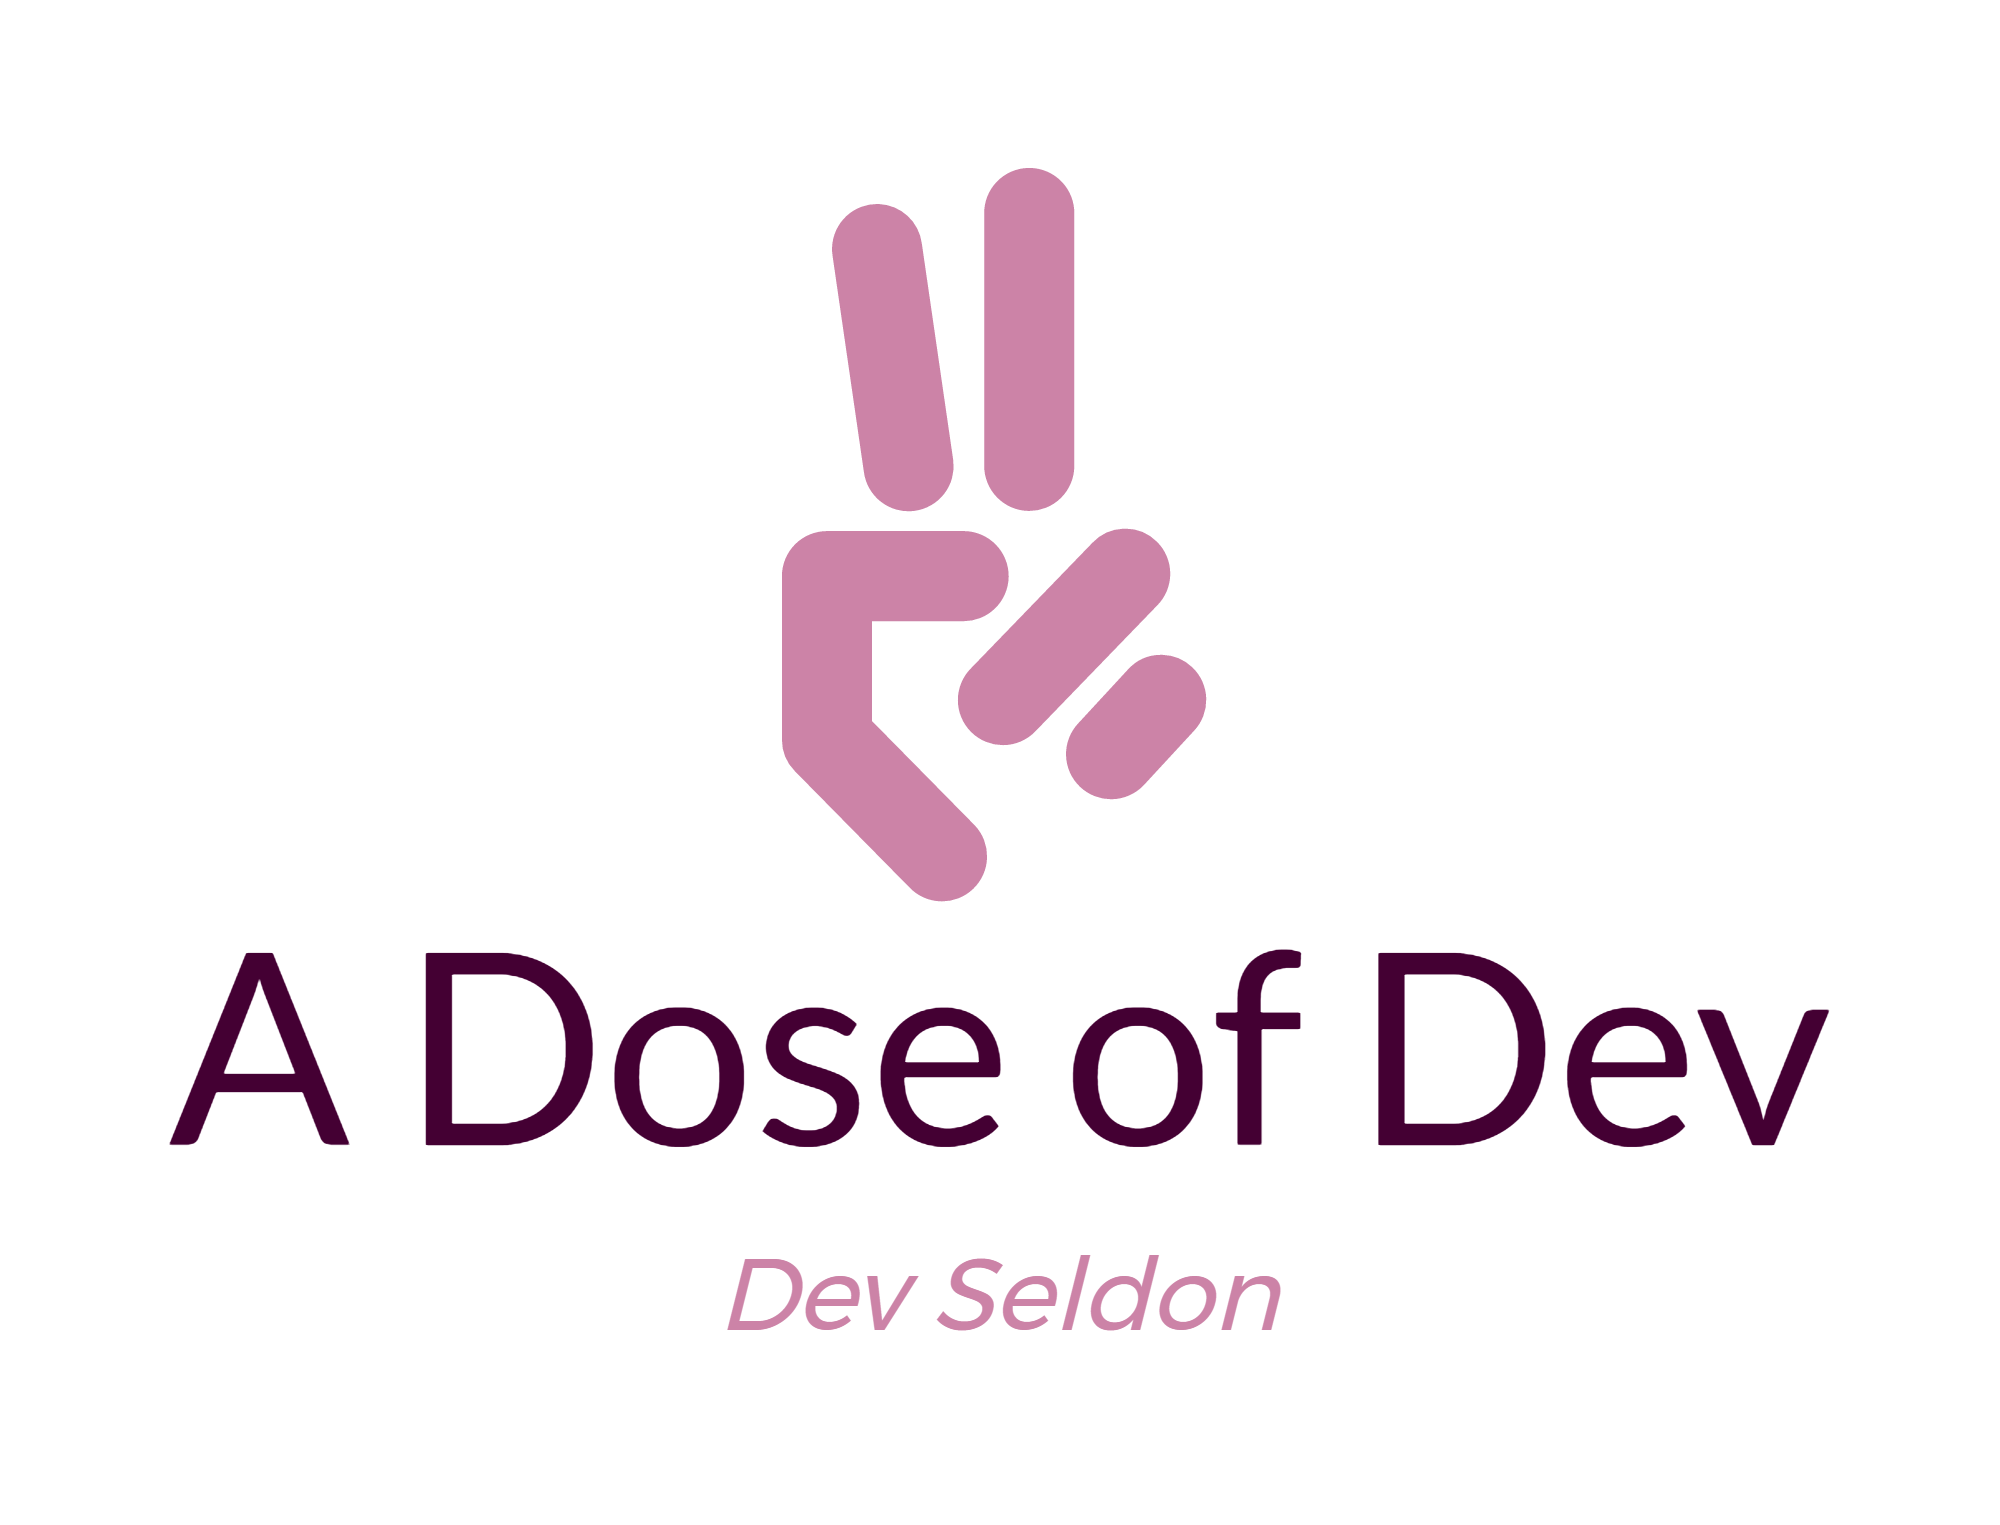 A Dose of Dev-logo.png